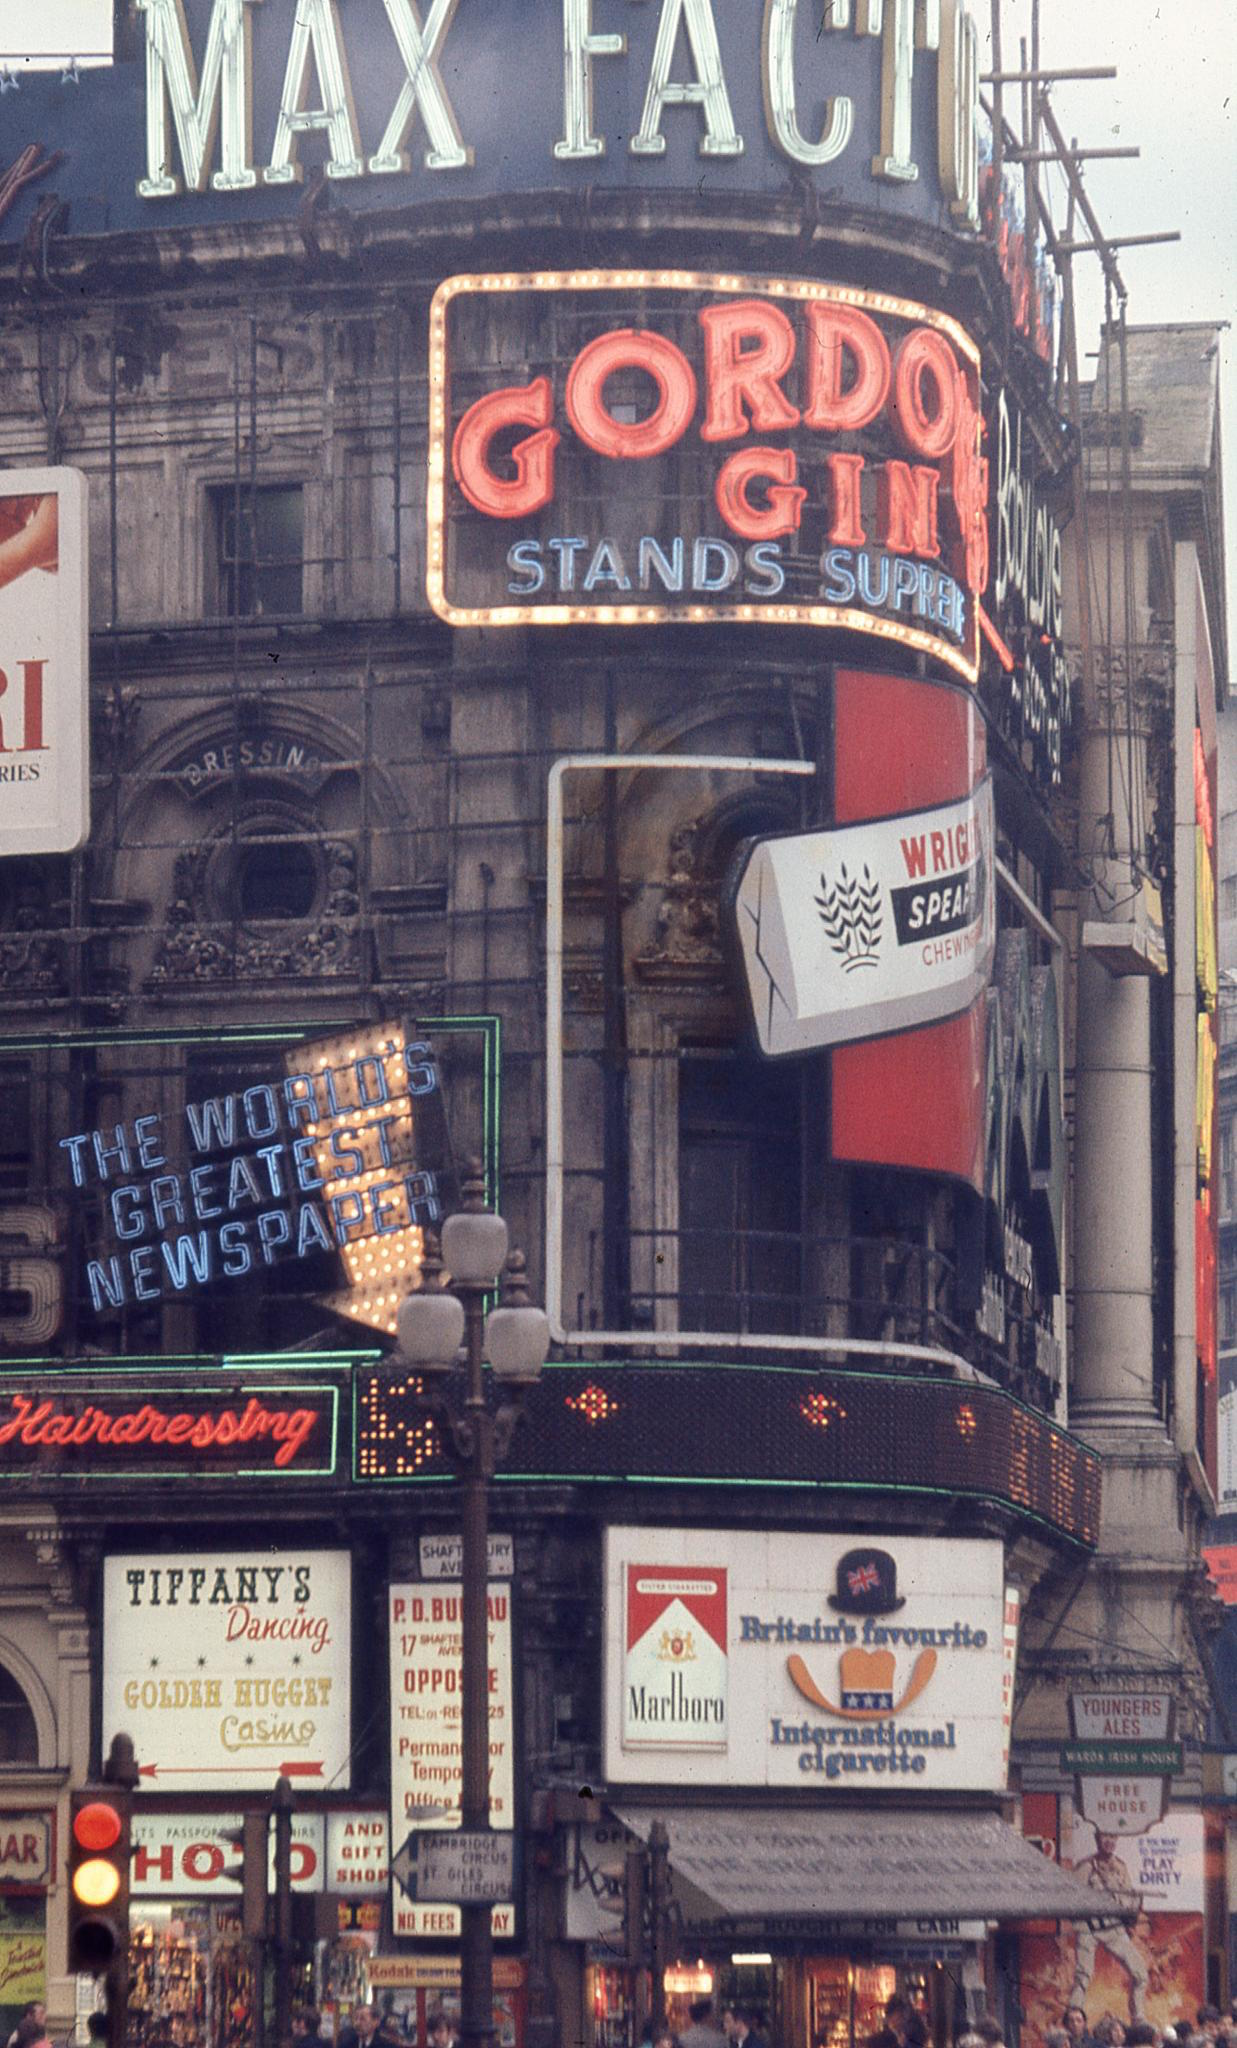 Piccadilly advertising in 1969 by Bernd Loos.